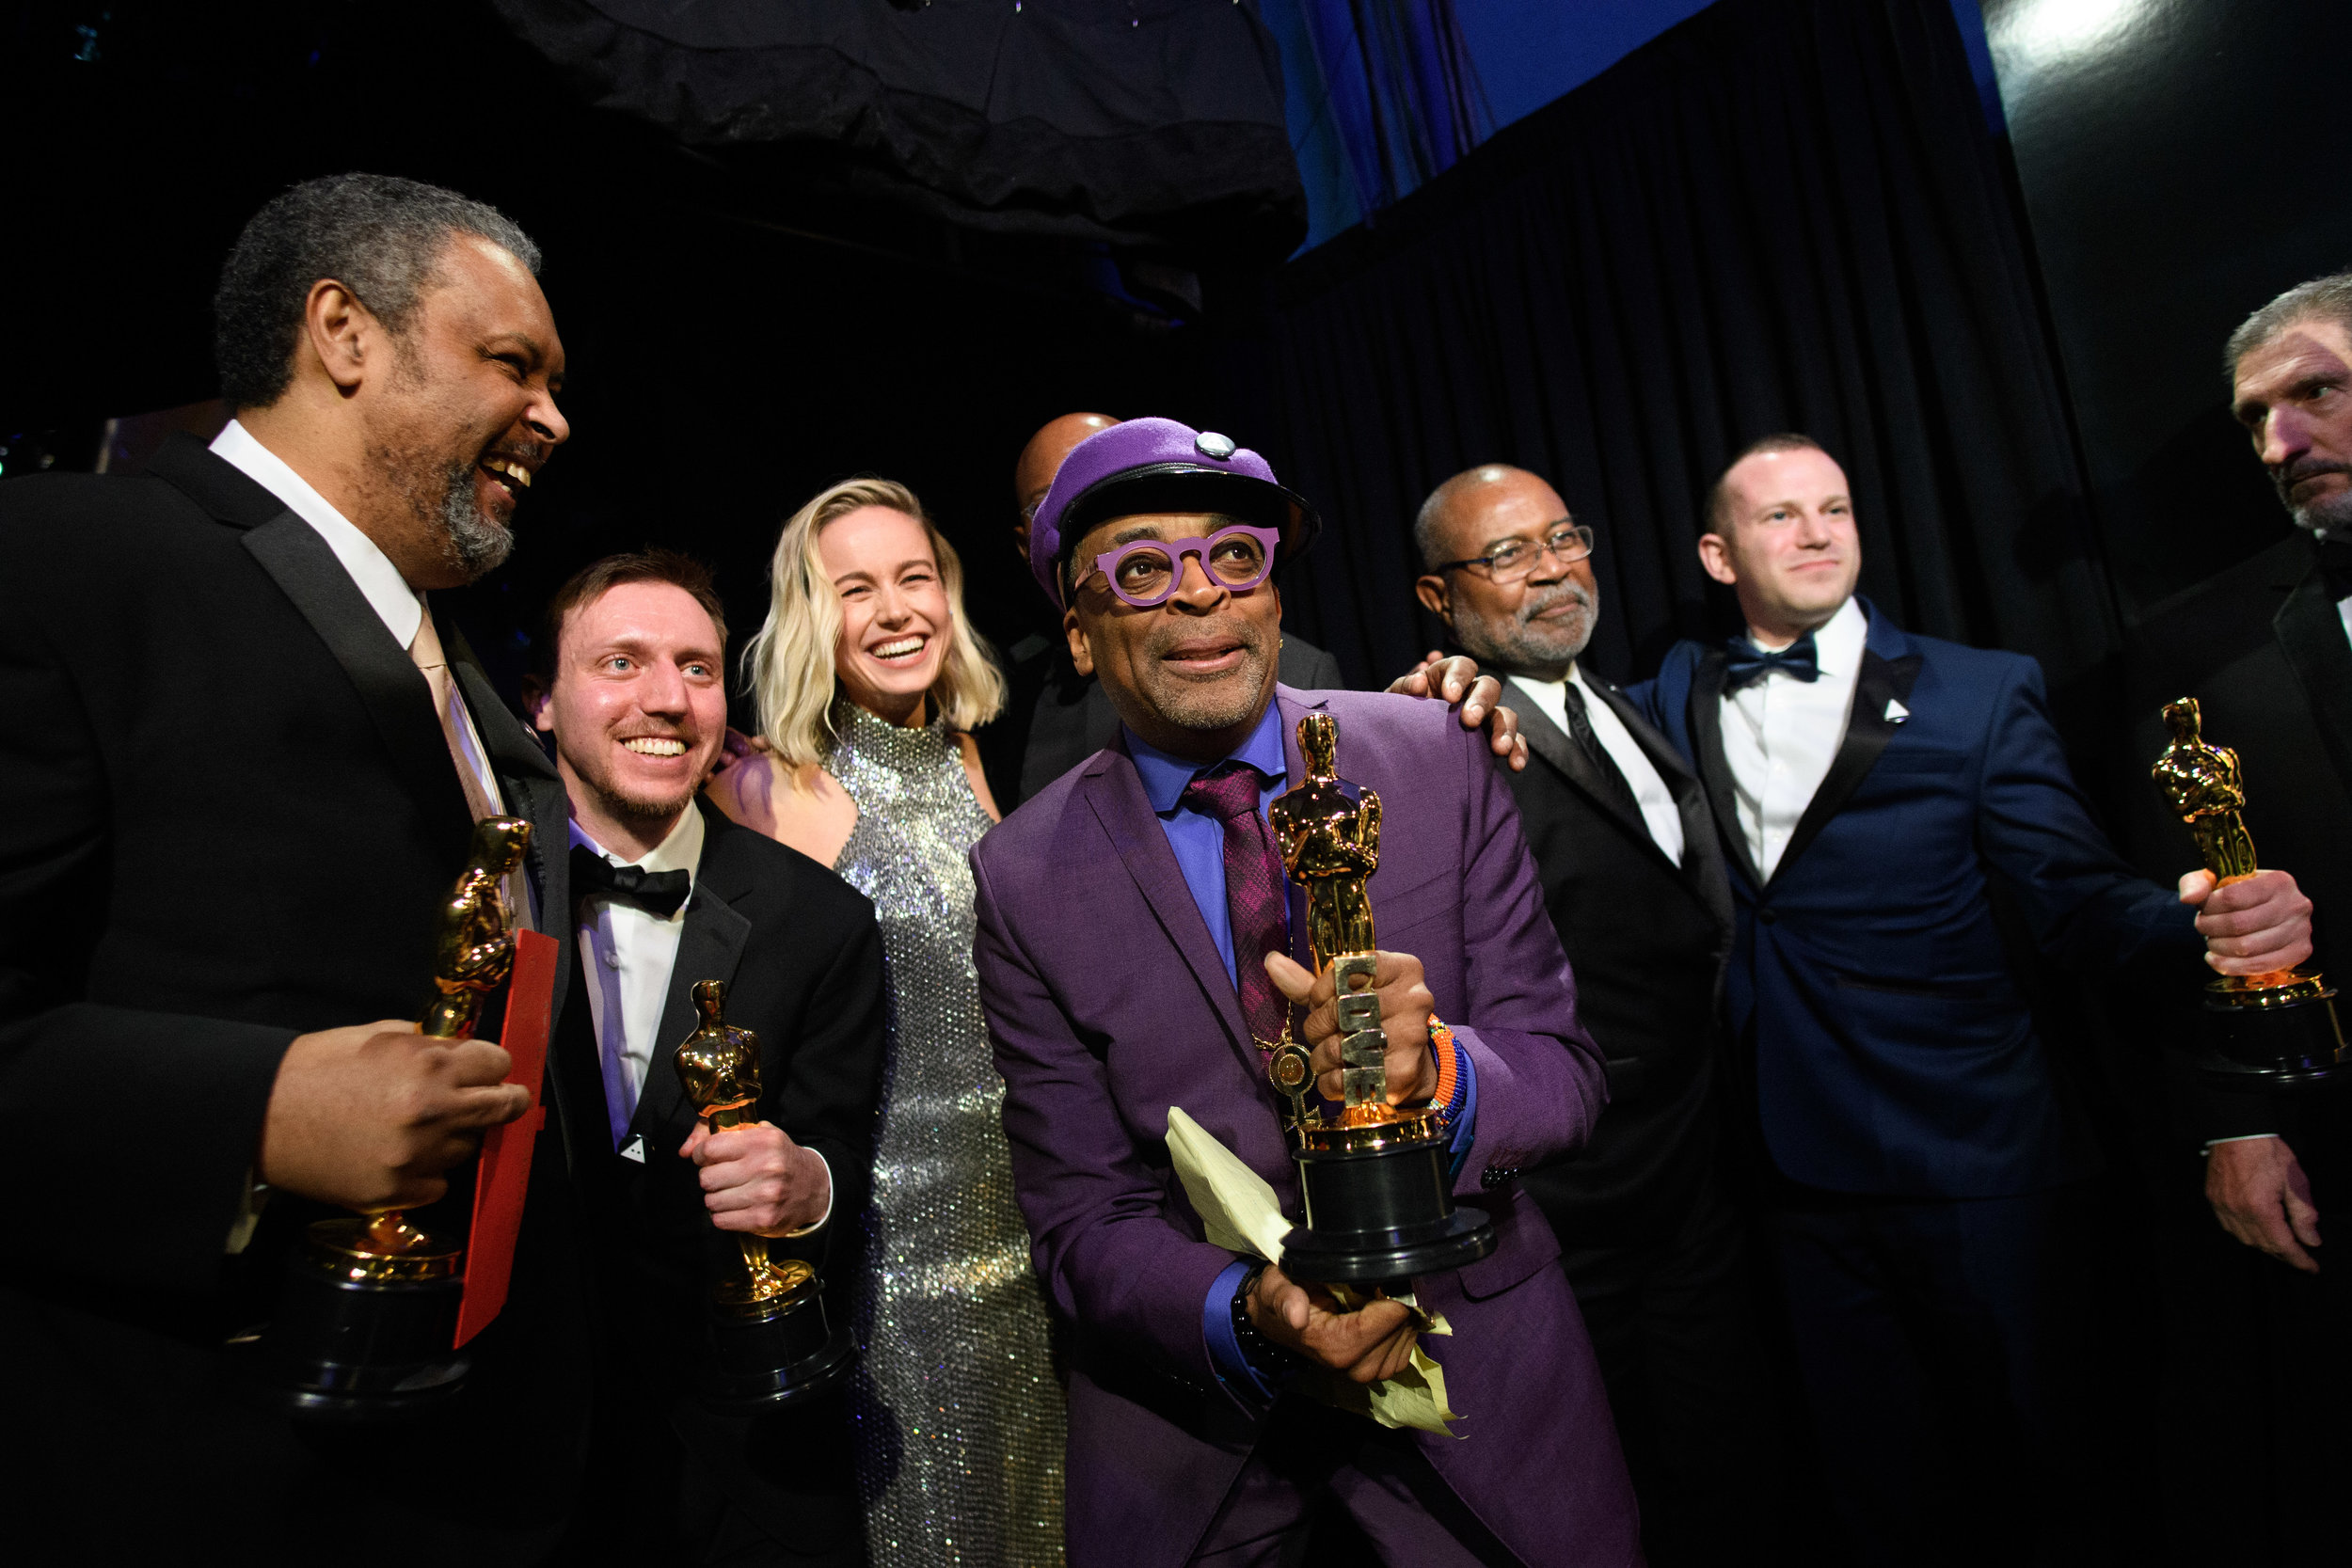 Kevin Wilmott, David Rabinowitz, Spike Lee and Charles Wachtel with Brie Larson pose backstage with the Oscar® for adapted screenplay during the live ABC Telecast of The 91st Oscars® at the Dolby® Theatre in Hollywood, CA on Sunday, February 24, 2019.  Credit: Matt Petit / ©A.M.P.A.S.